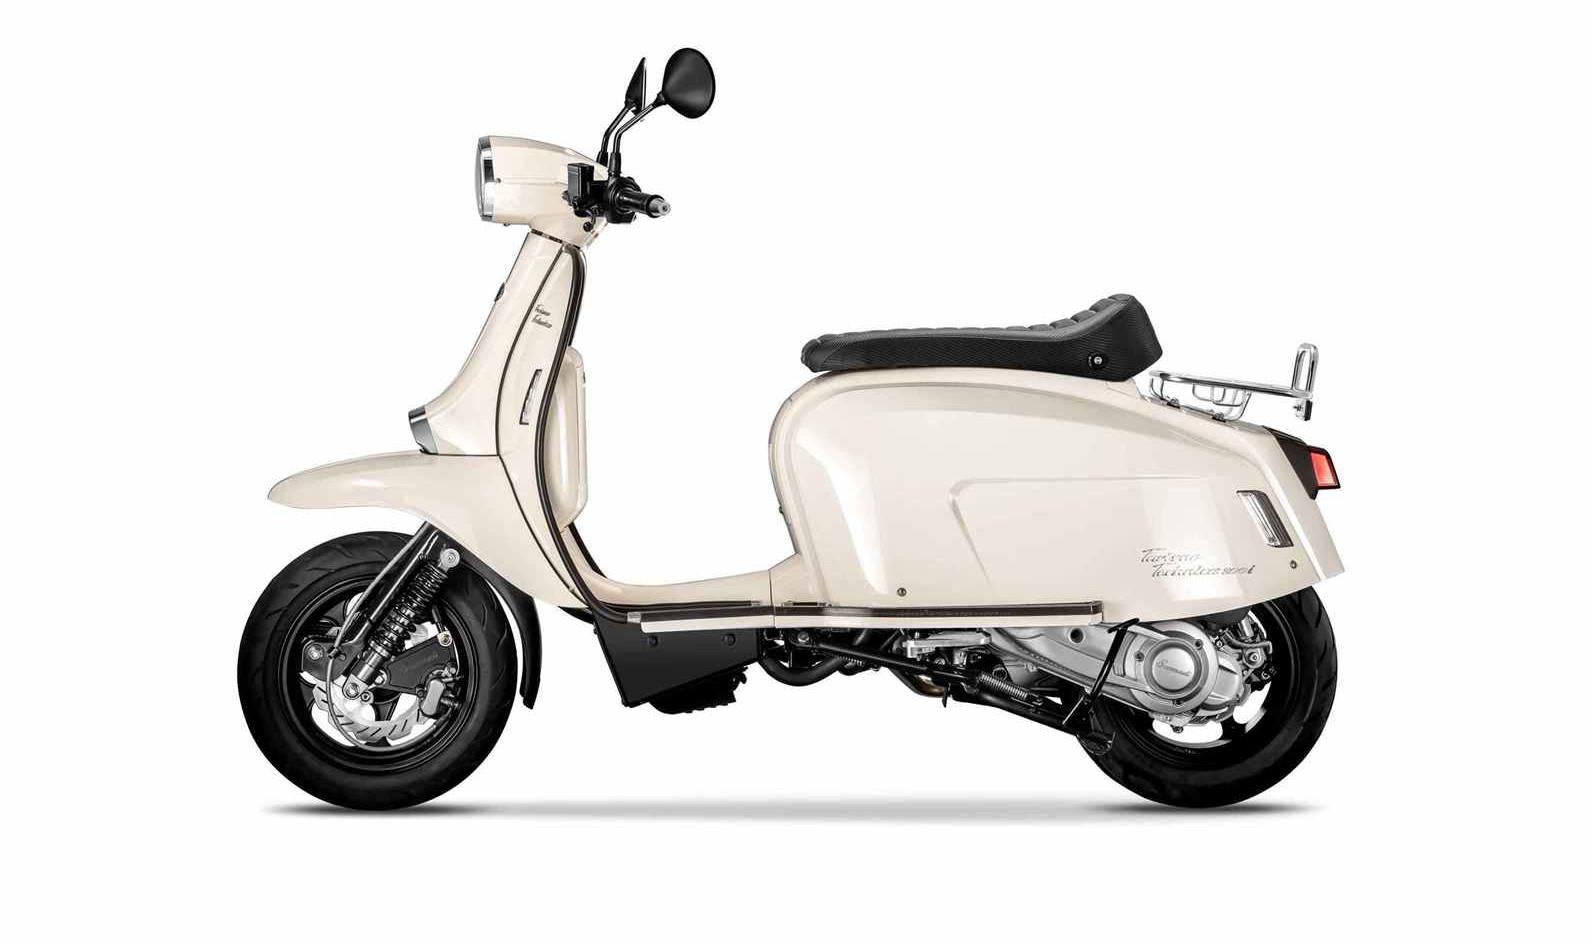 Scomadi_200cc_Jan2019_Side_Cream-1-1.jpg